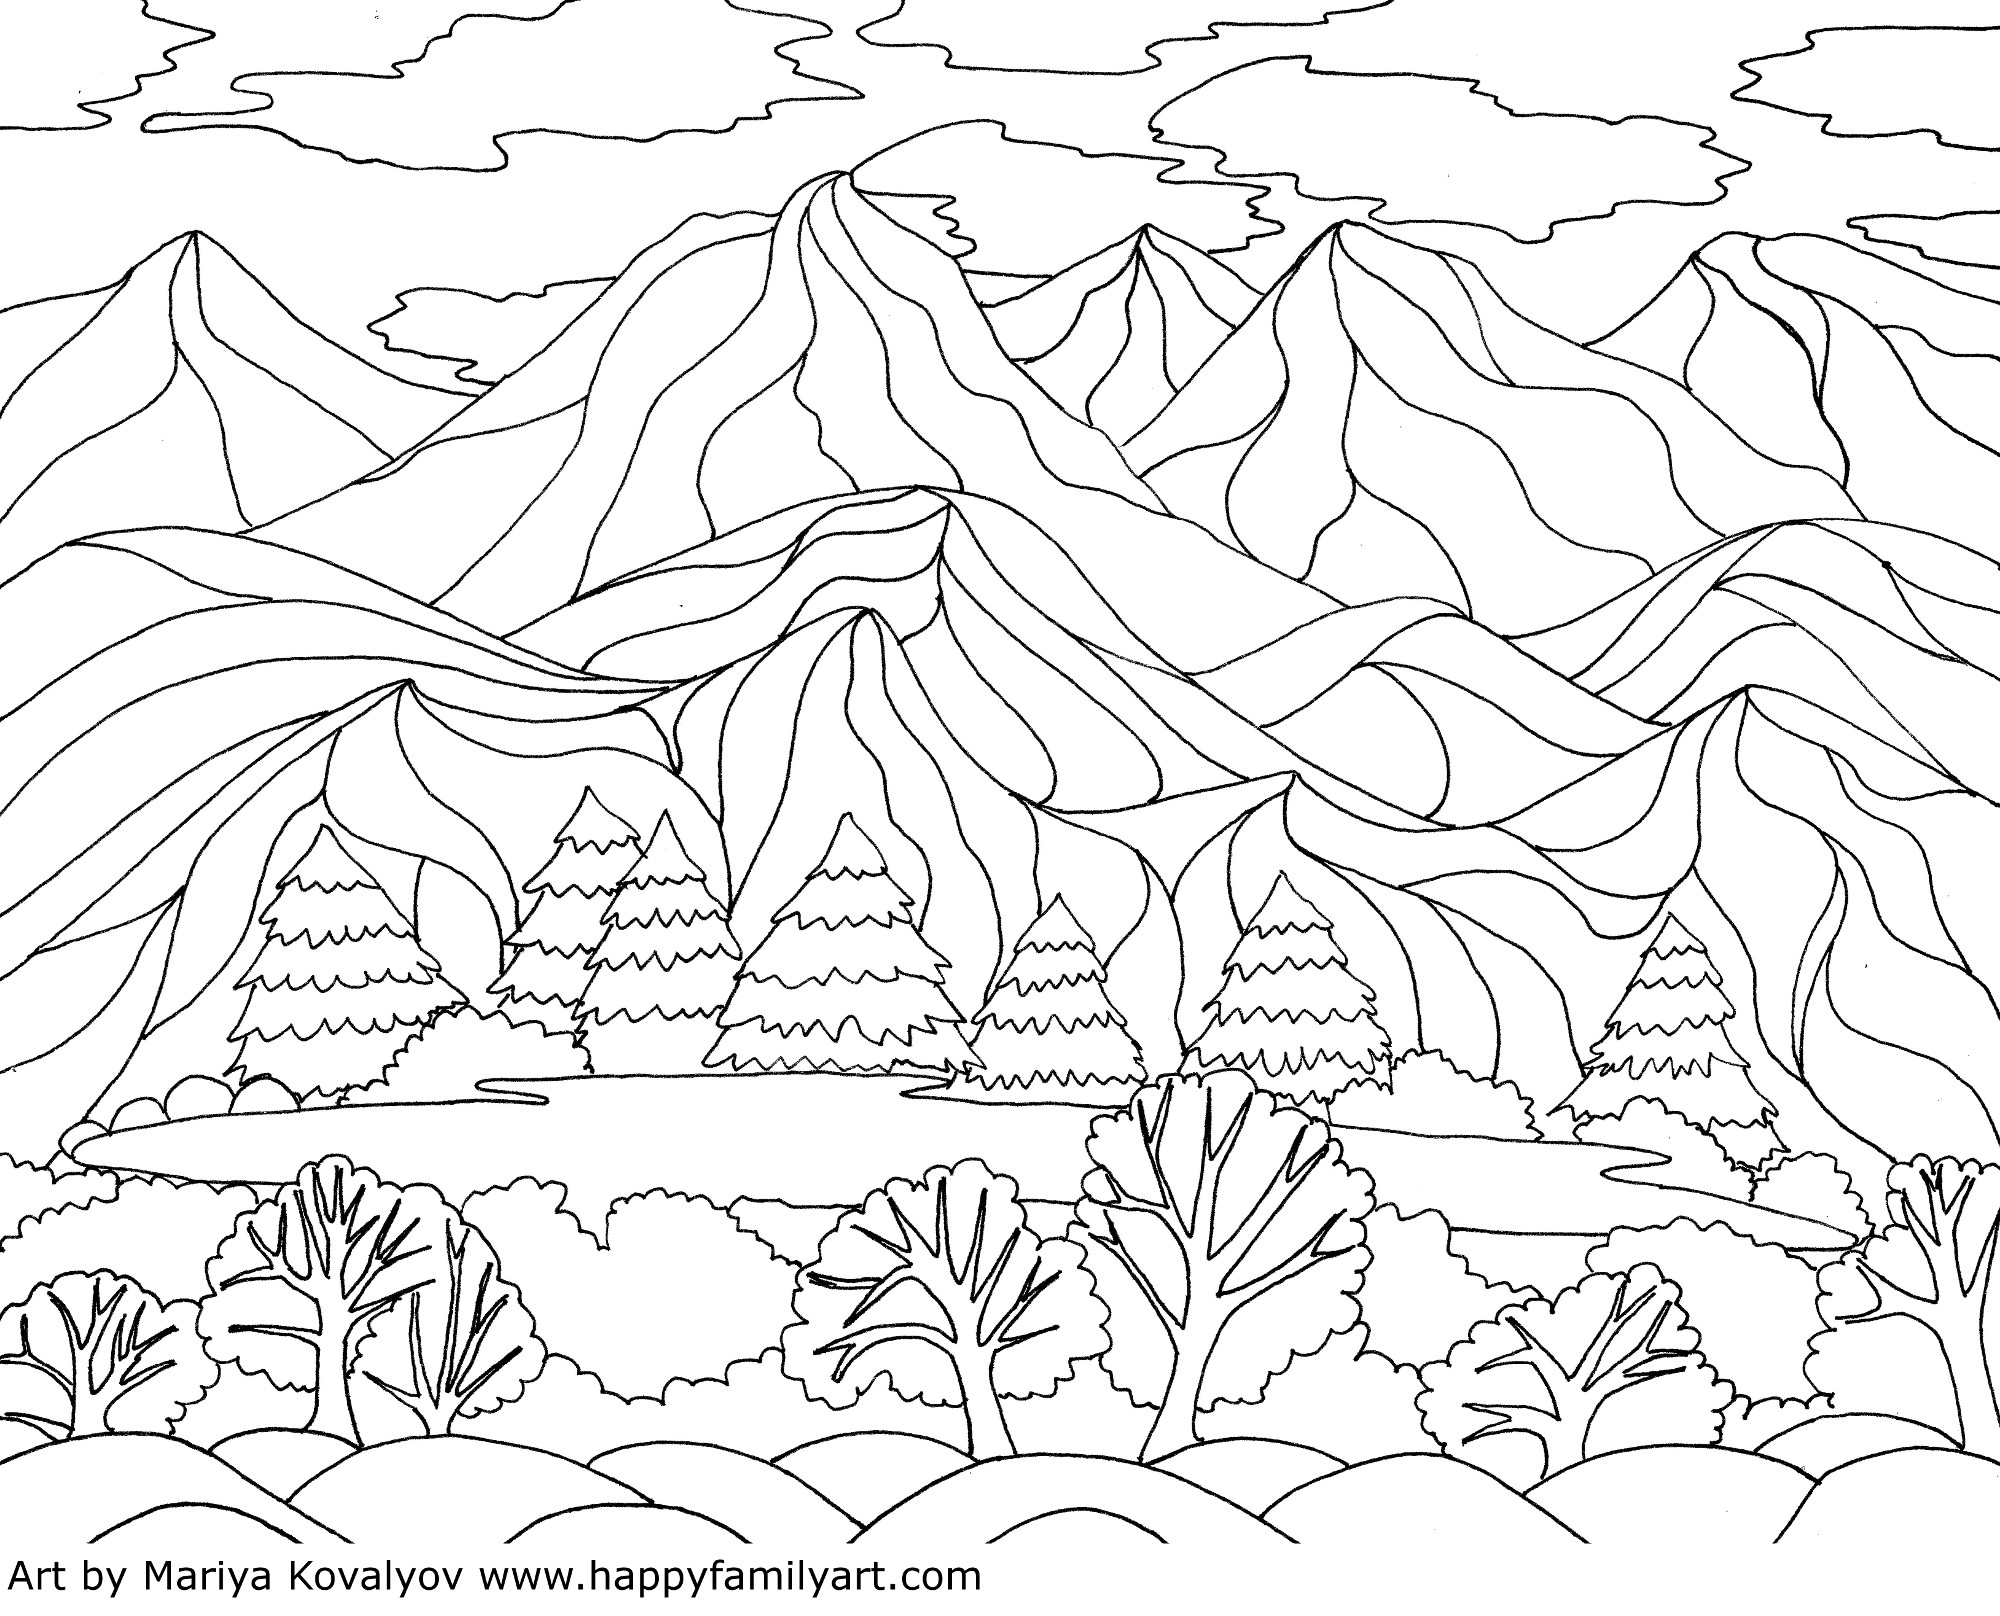 1899x1445 Beach Landscape Coloring Pages Articlespagemachinecom 1 2000x1616 Georgia O39Keeffe Art History Lesson For Kids